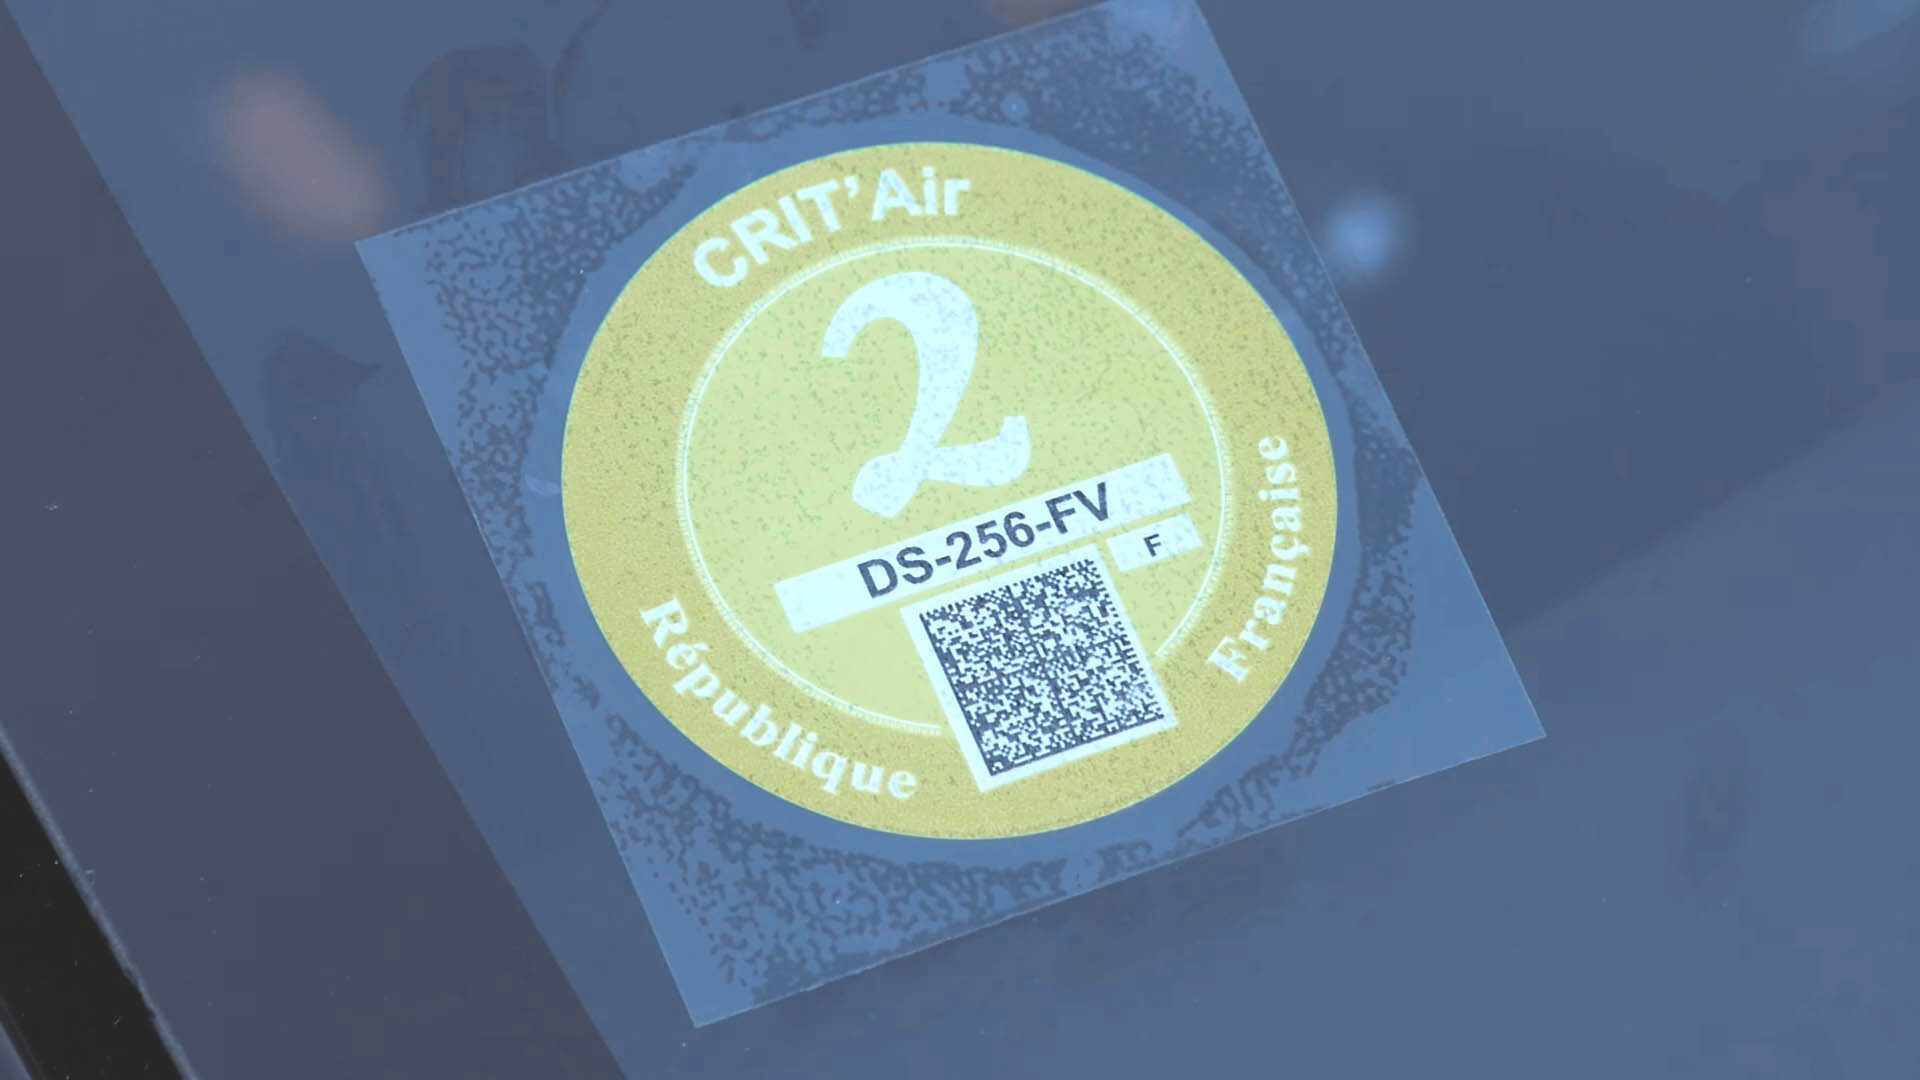 Certificat qualité de l'air vignette Crit'Air